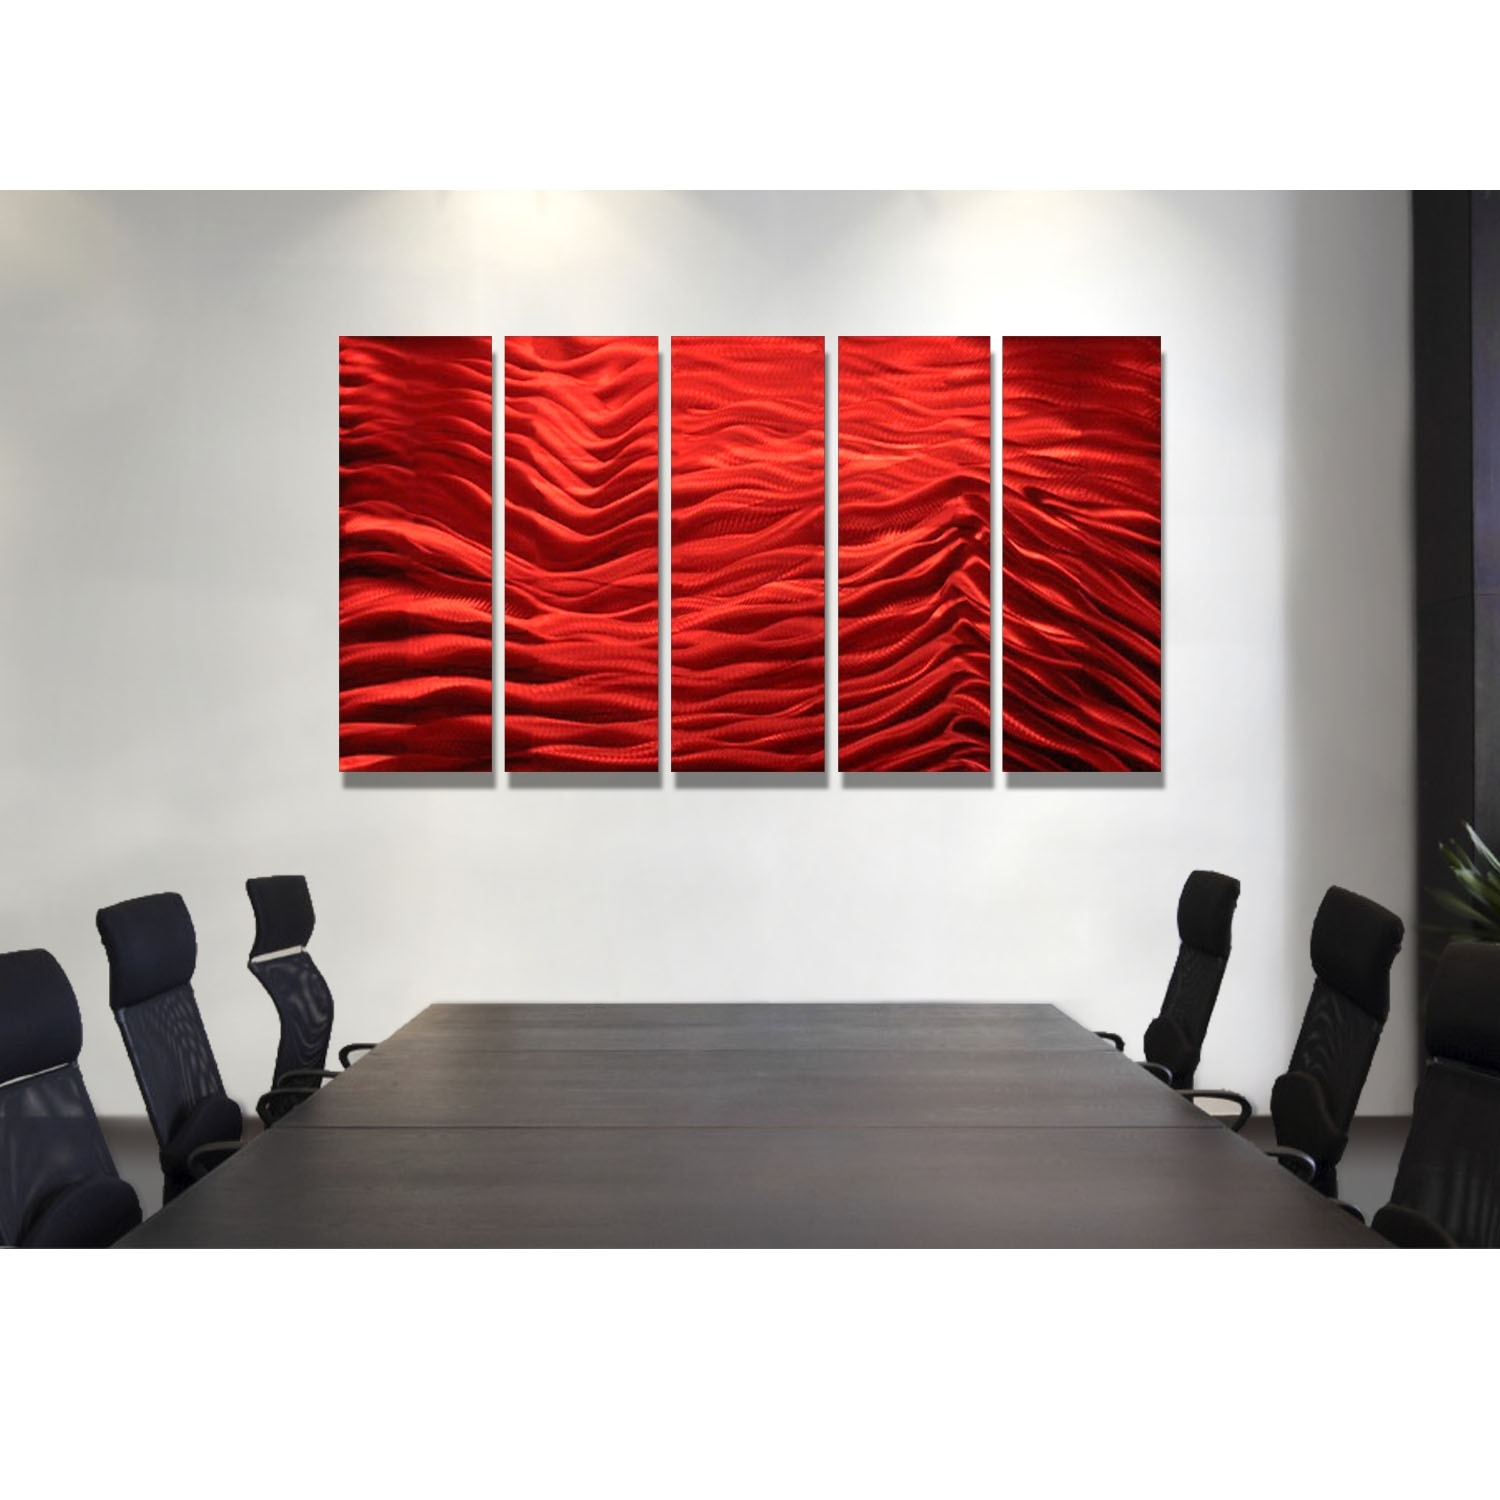 Red Inertia – Red Metal Wall Art – 5 Panel Wall Décorjon Allen Throughout 5 Panel Wall Art (View 16 of 20)